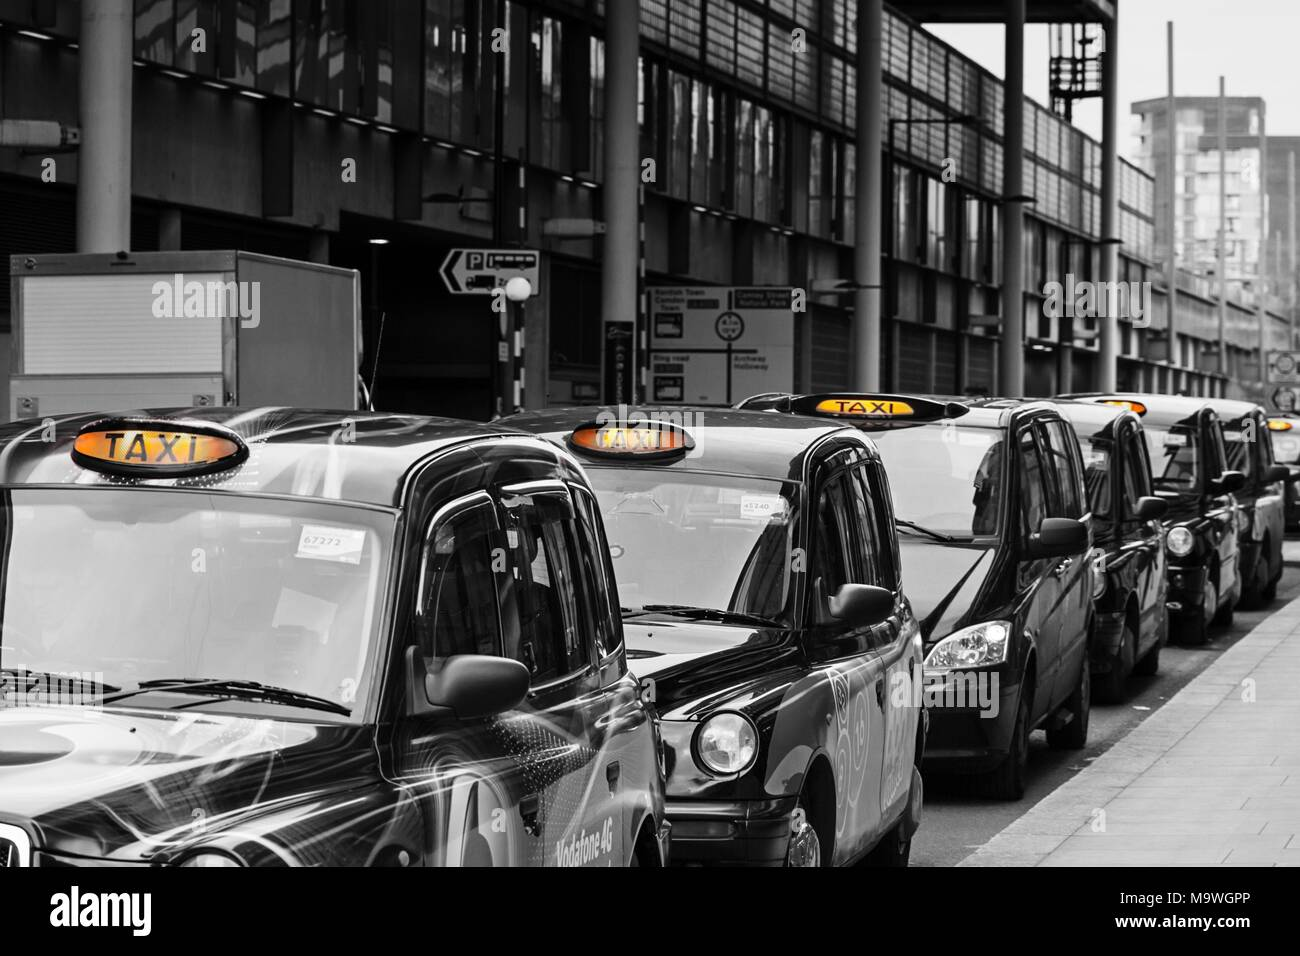 A queue of London black cab taxis in a row at a taxi rank, waiting to pick up passengers near Kings Cross station with for hire light illuminated Stock Photo